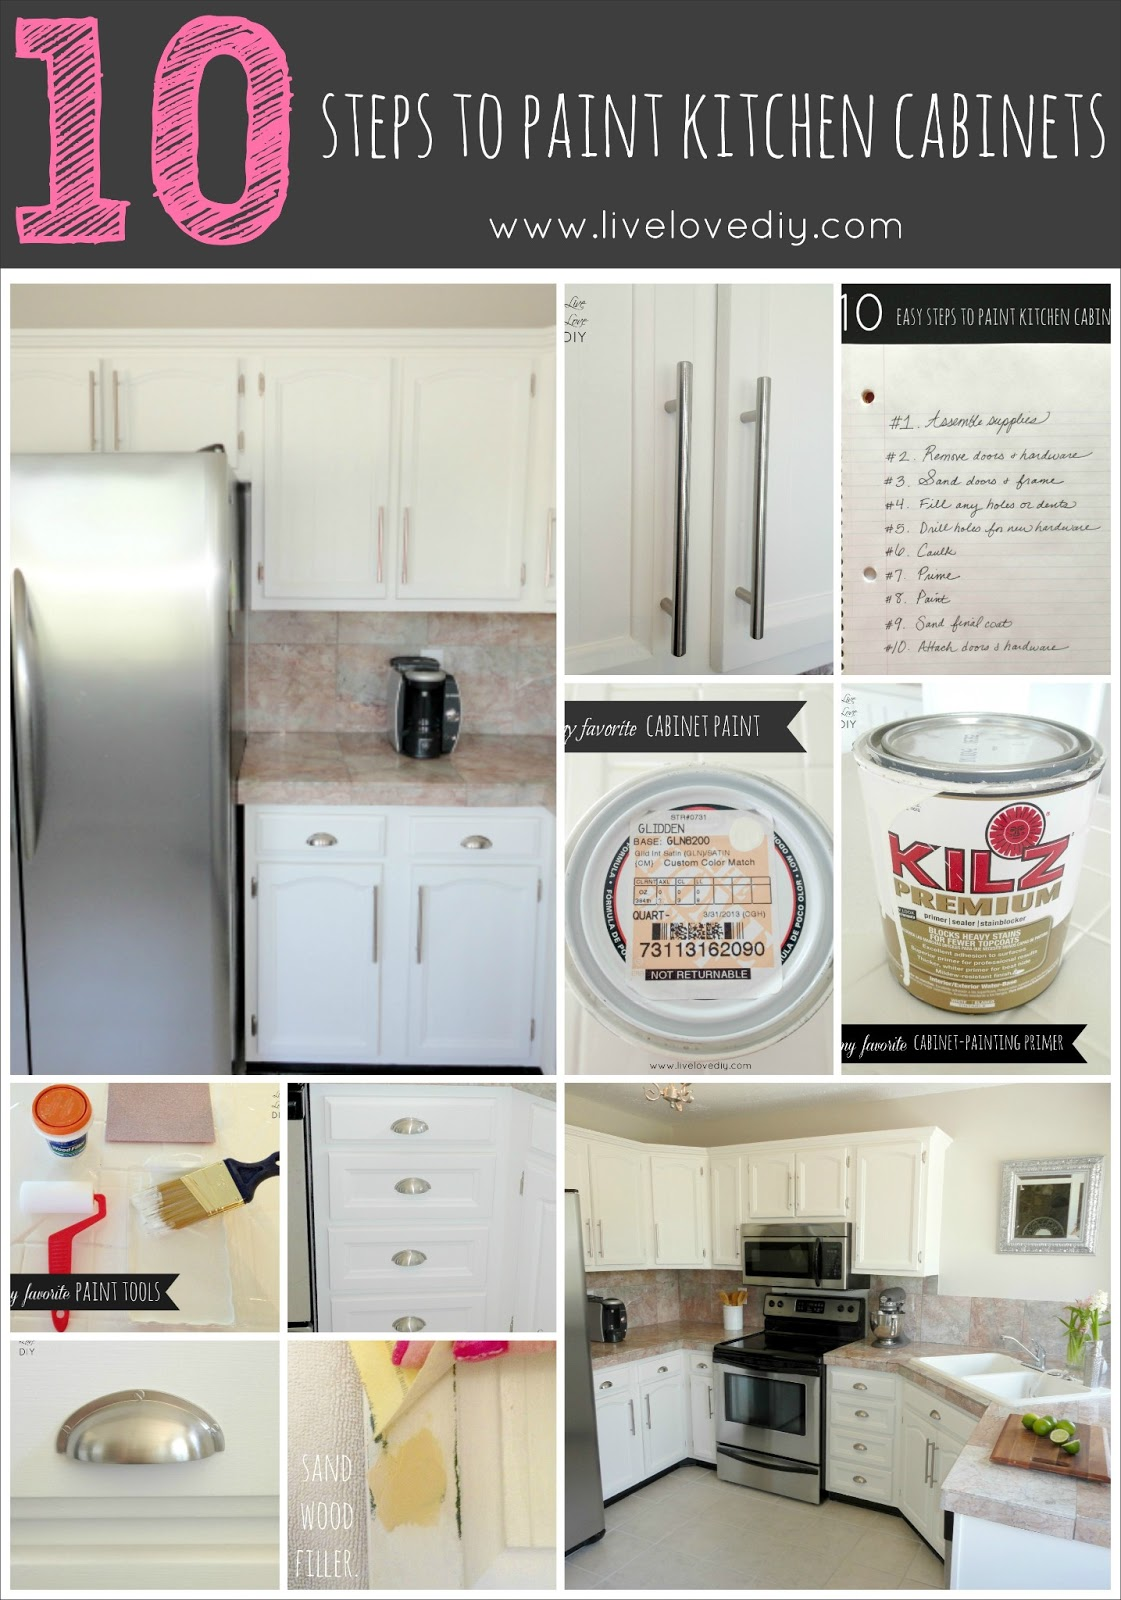 Livelovediy how to paint kitchen cabinets in 10 easy steps for Can you use kitchen cabinets in bathrooms